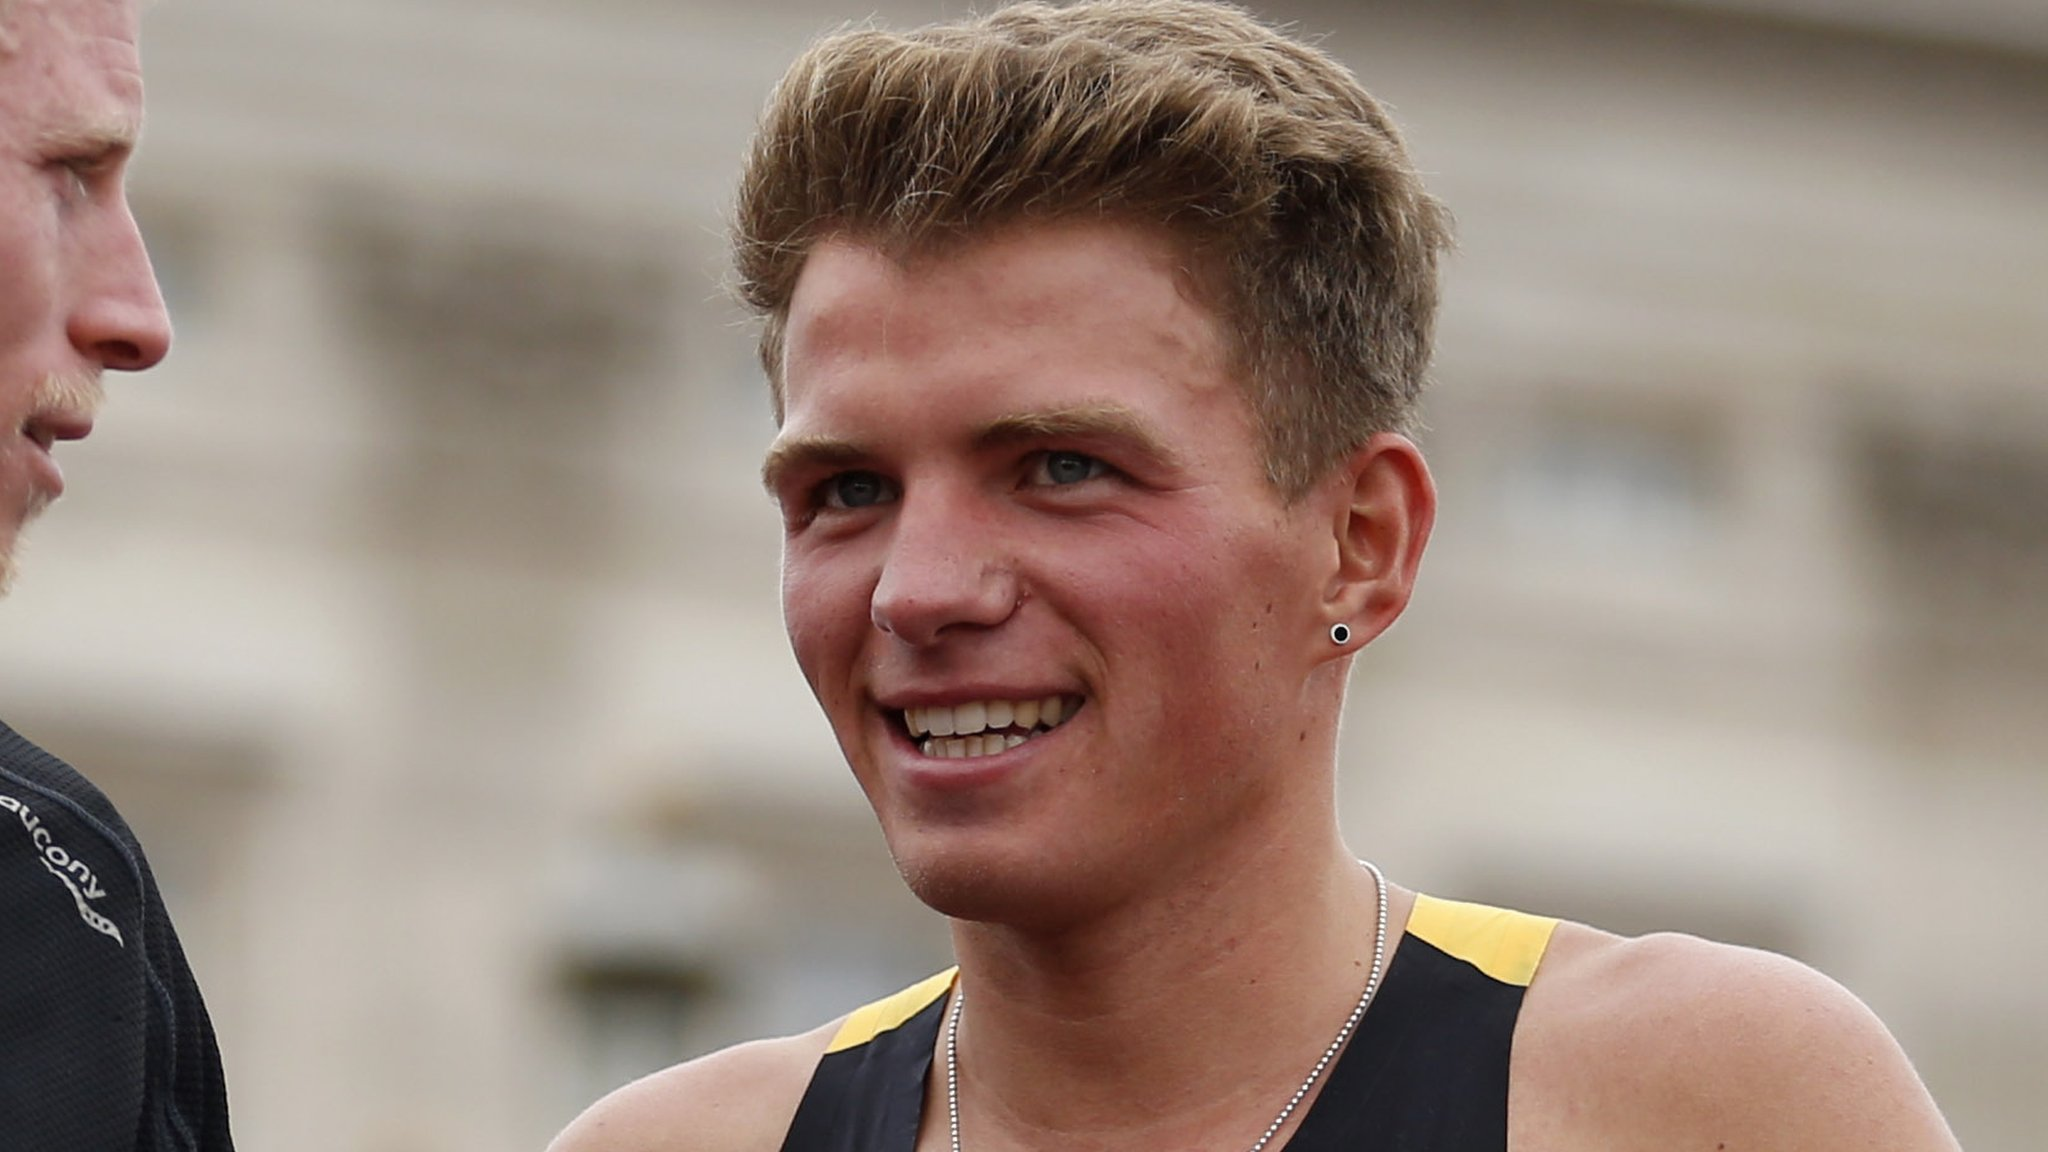 Andrew Butchart wins 5,000m at British Championships to seal Olympics spot